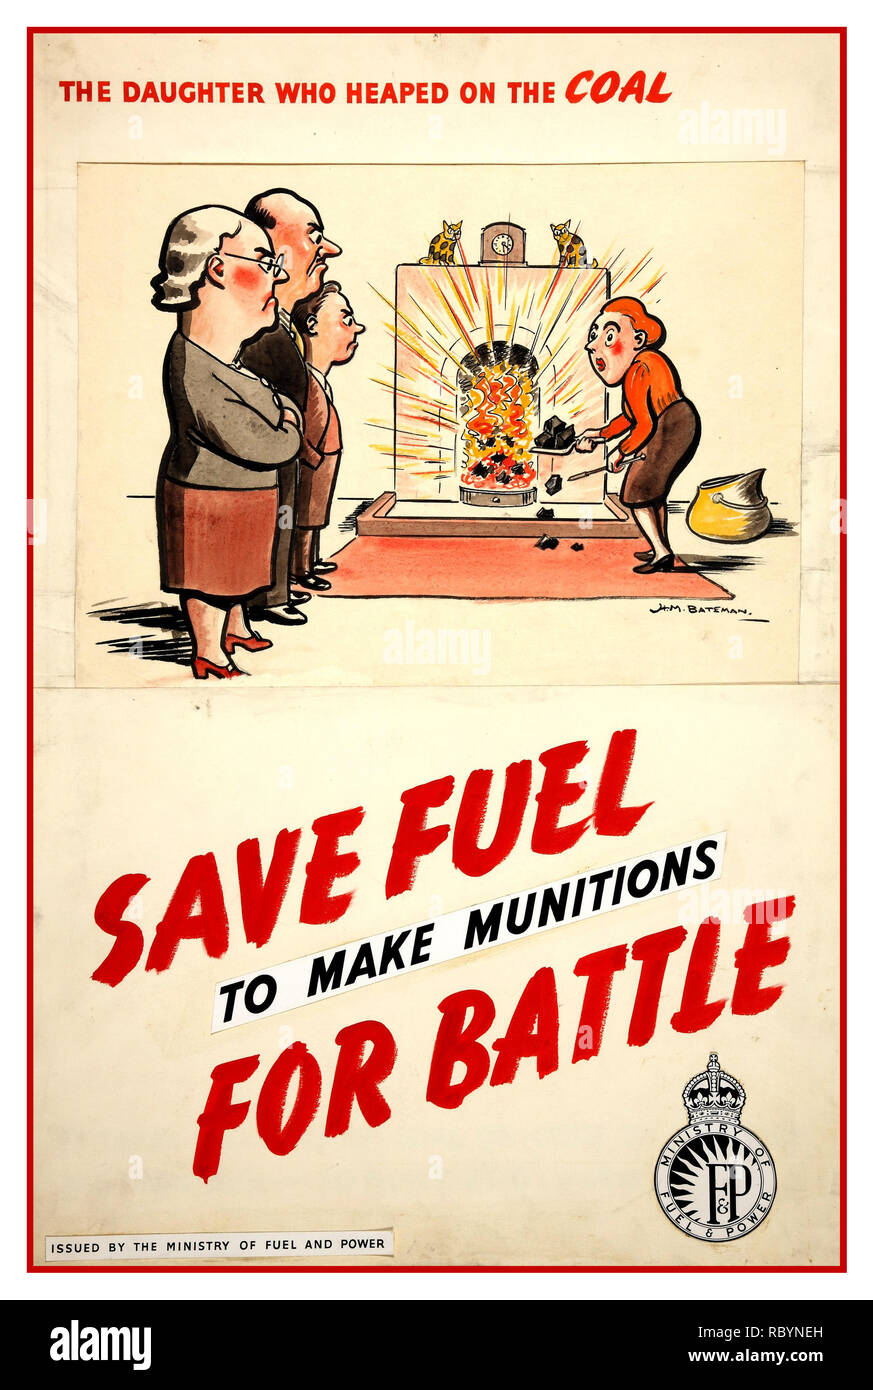 Archive WW2 Propaganda Poster 1940's UK Government 'SAVE FUEL  to make munitions FOR BATTLE '  issued by the British Ministry of Fuel and Power - Stock Image